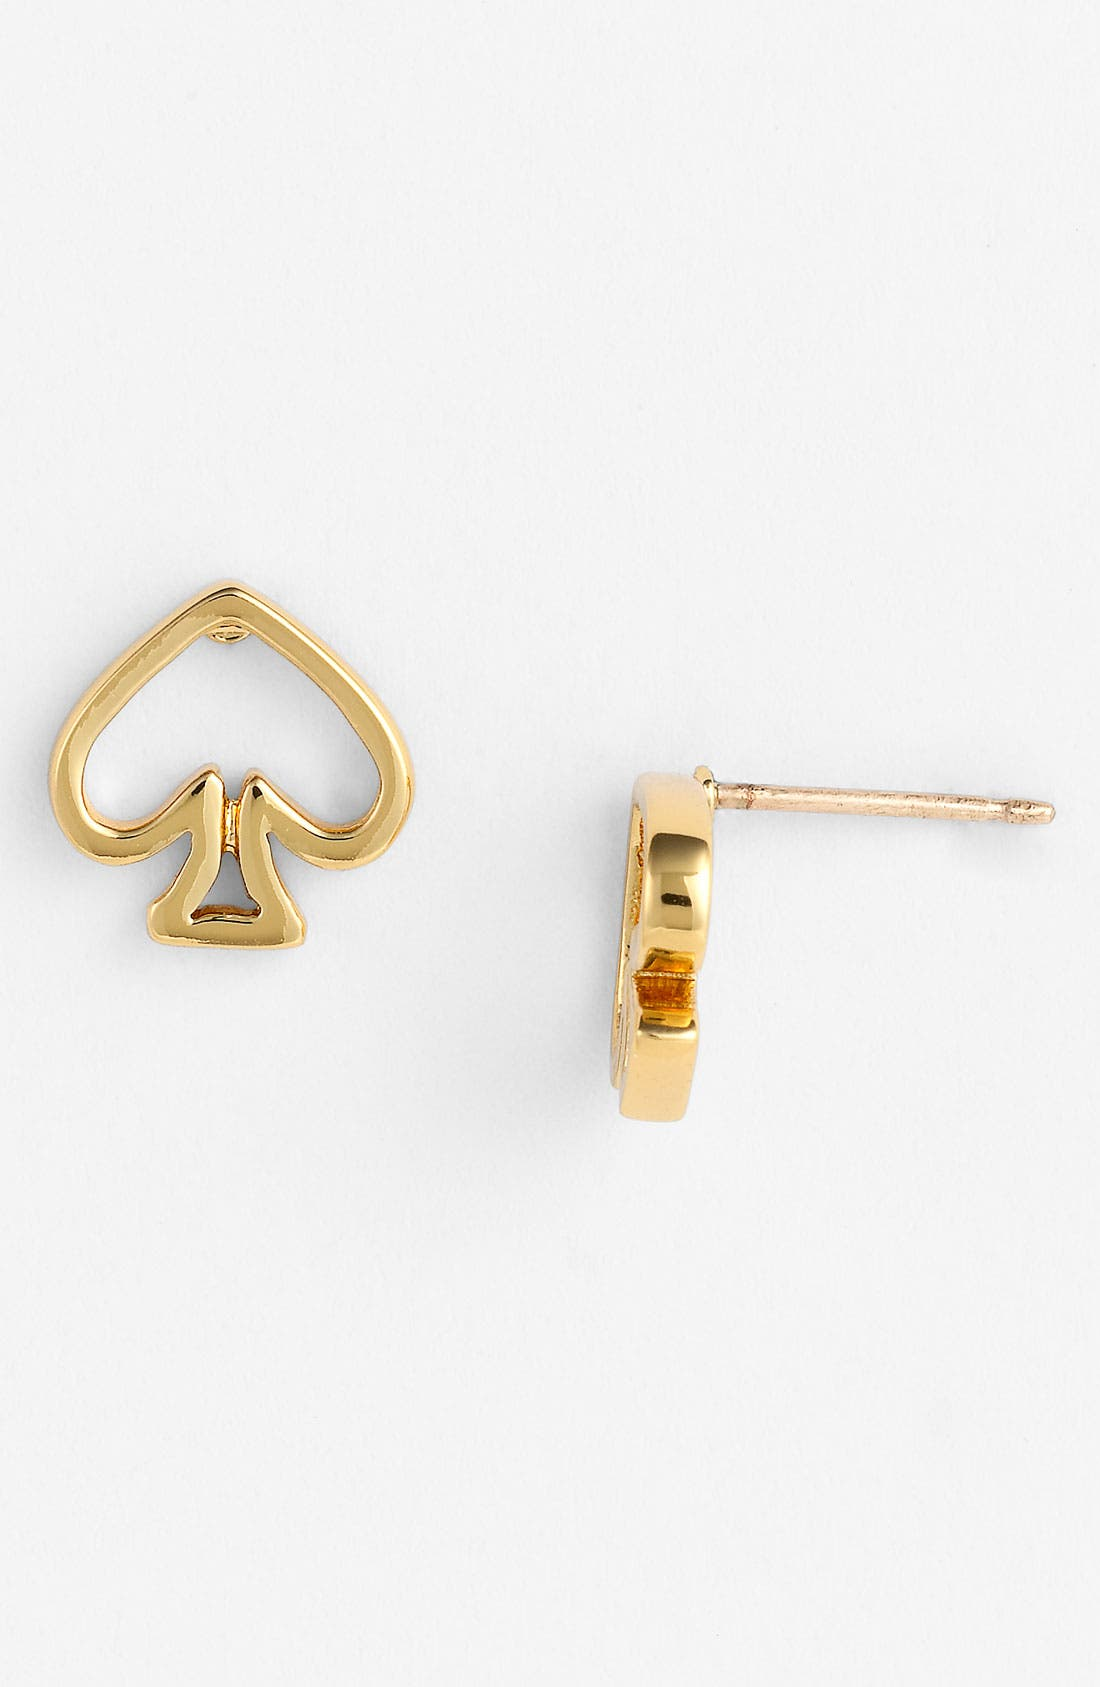 Main Image - kate spade new york 'open spade' stud earrings